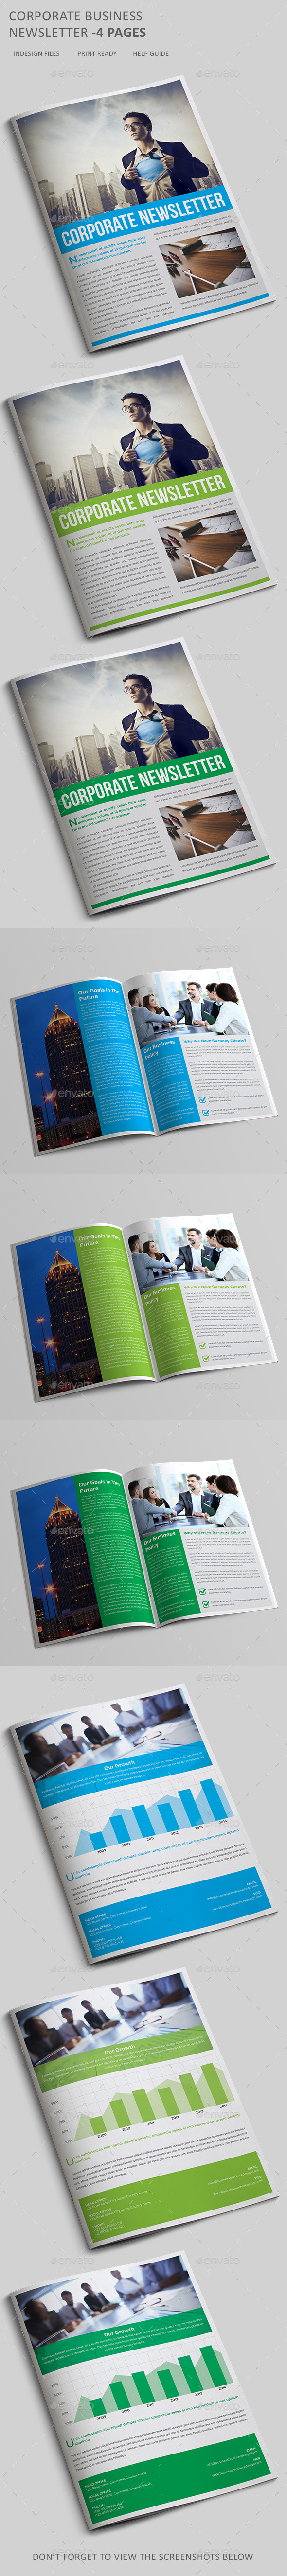 GraphicRiver Corporate Newsletter Template 4 Pages 10859889